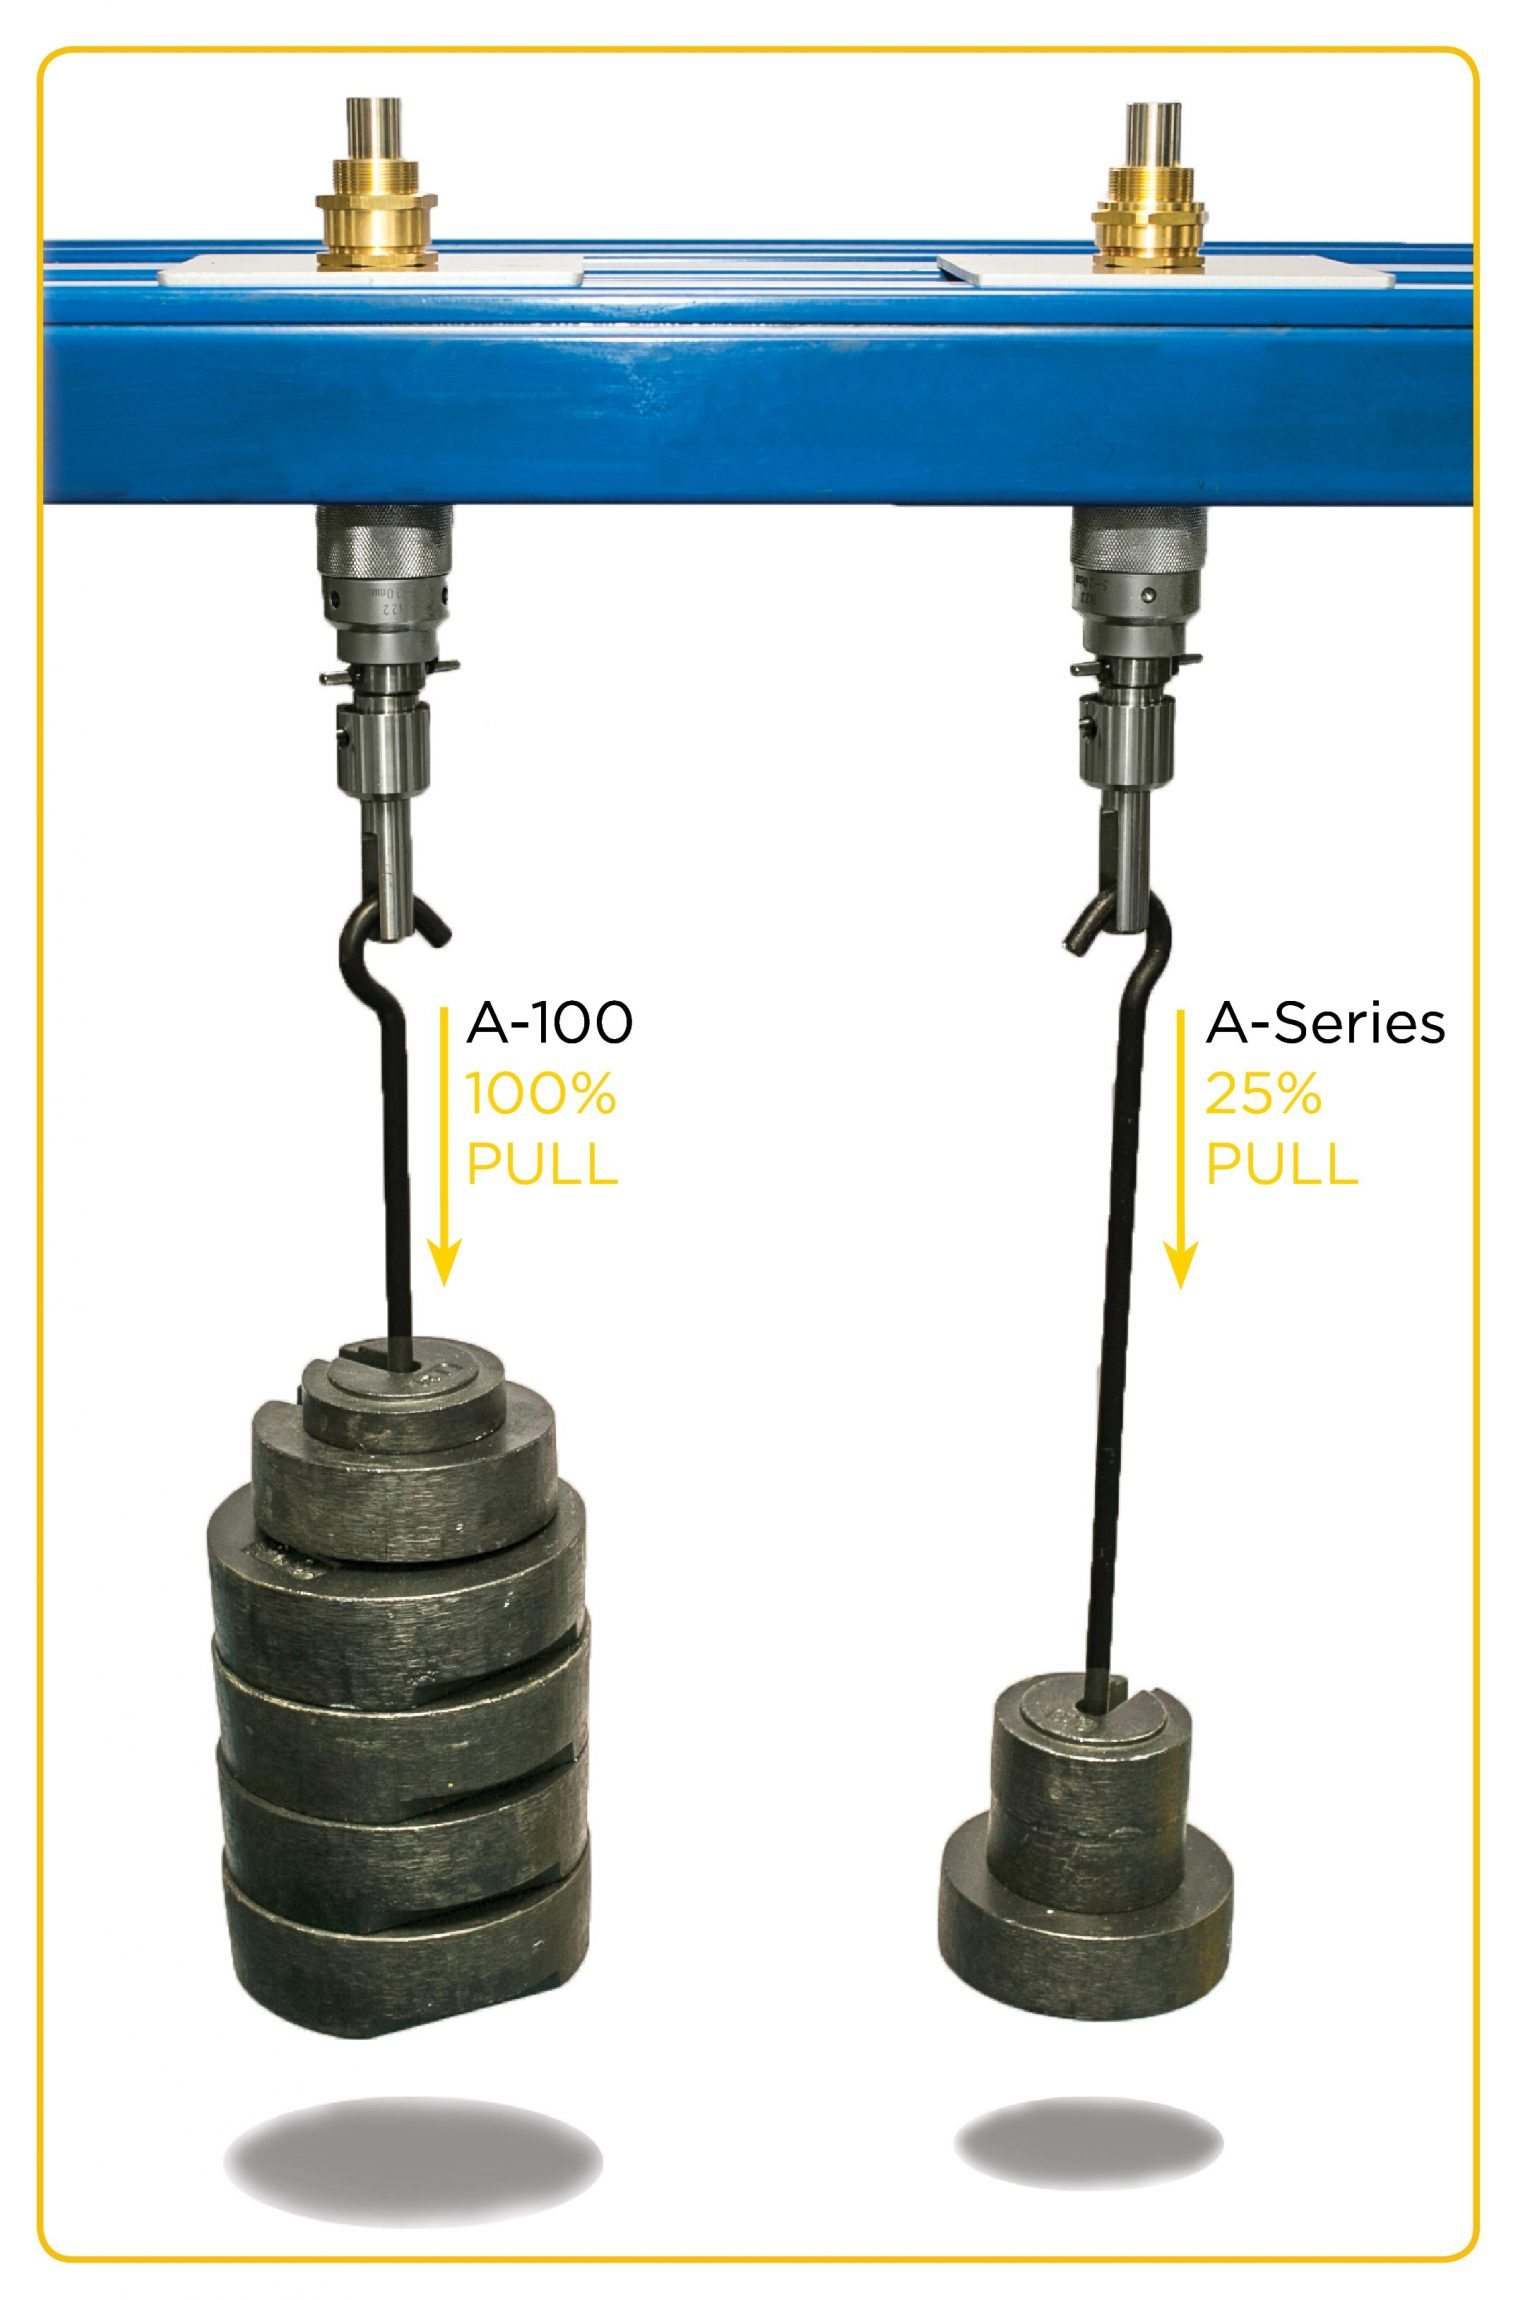 A100 Pull Test for Cable Glands